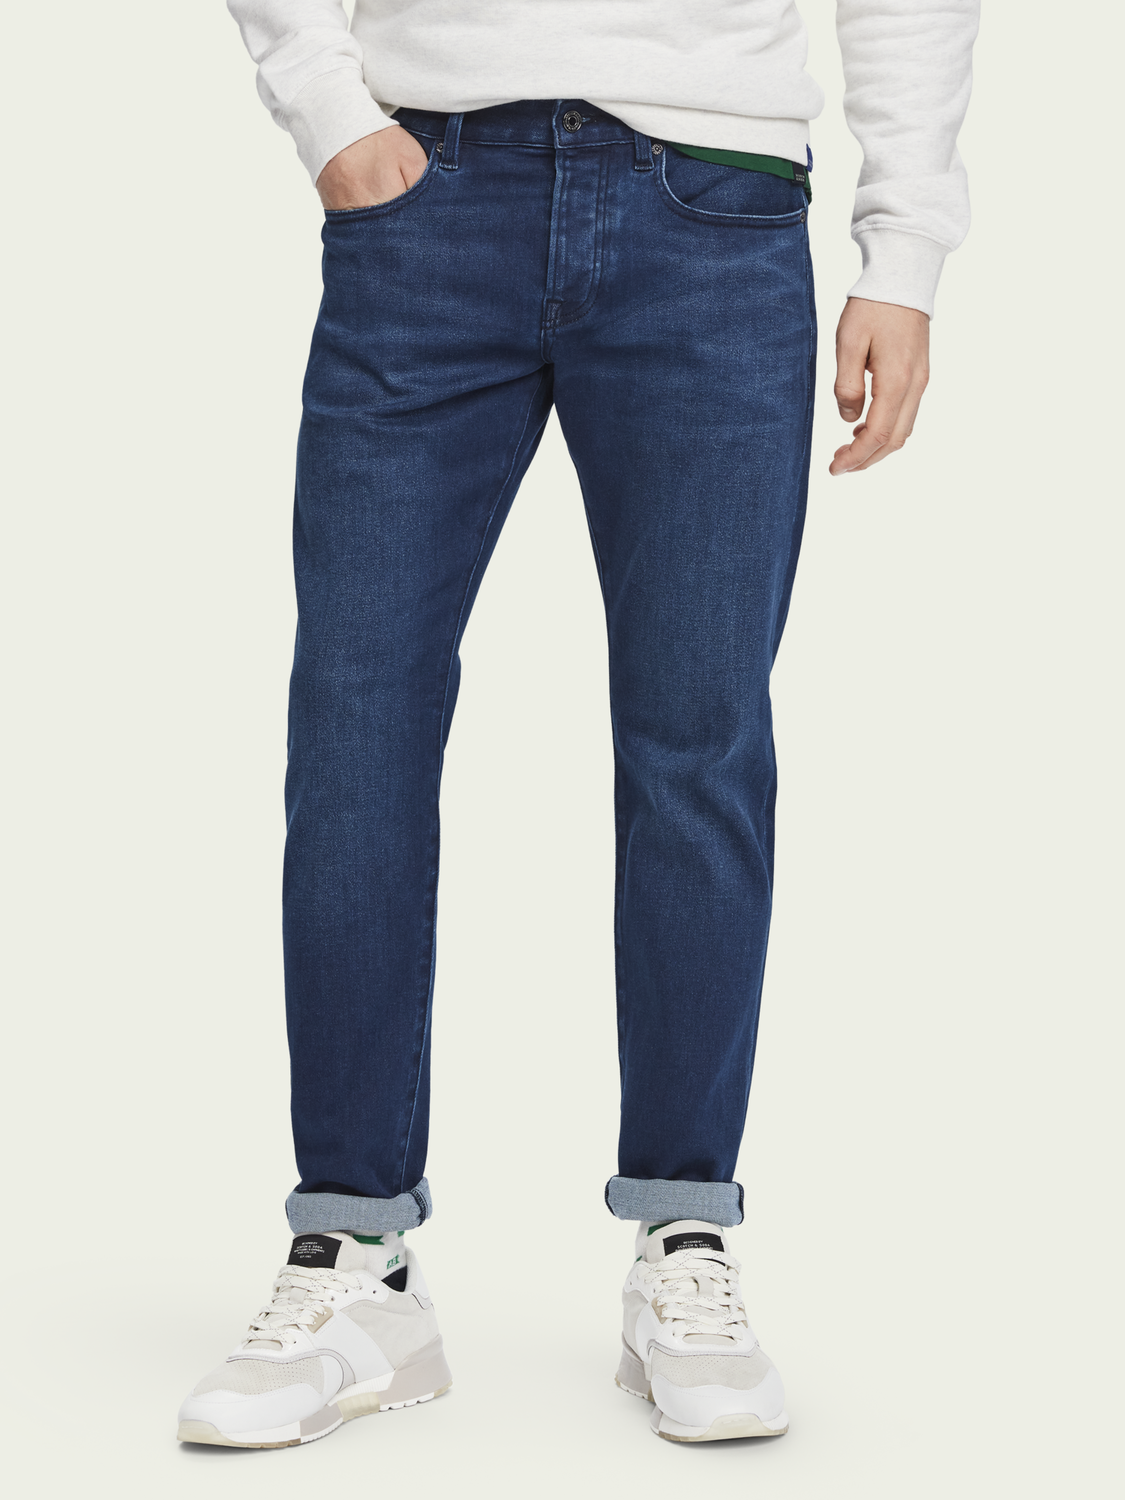 Herren Ralston – Spyglass Dark | Regular Slim Fit Jeans